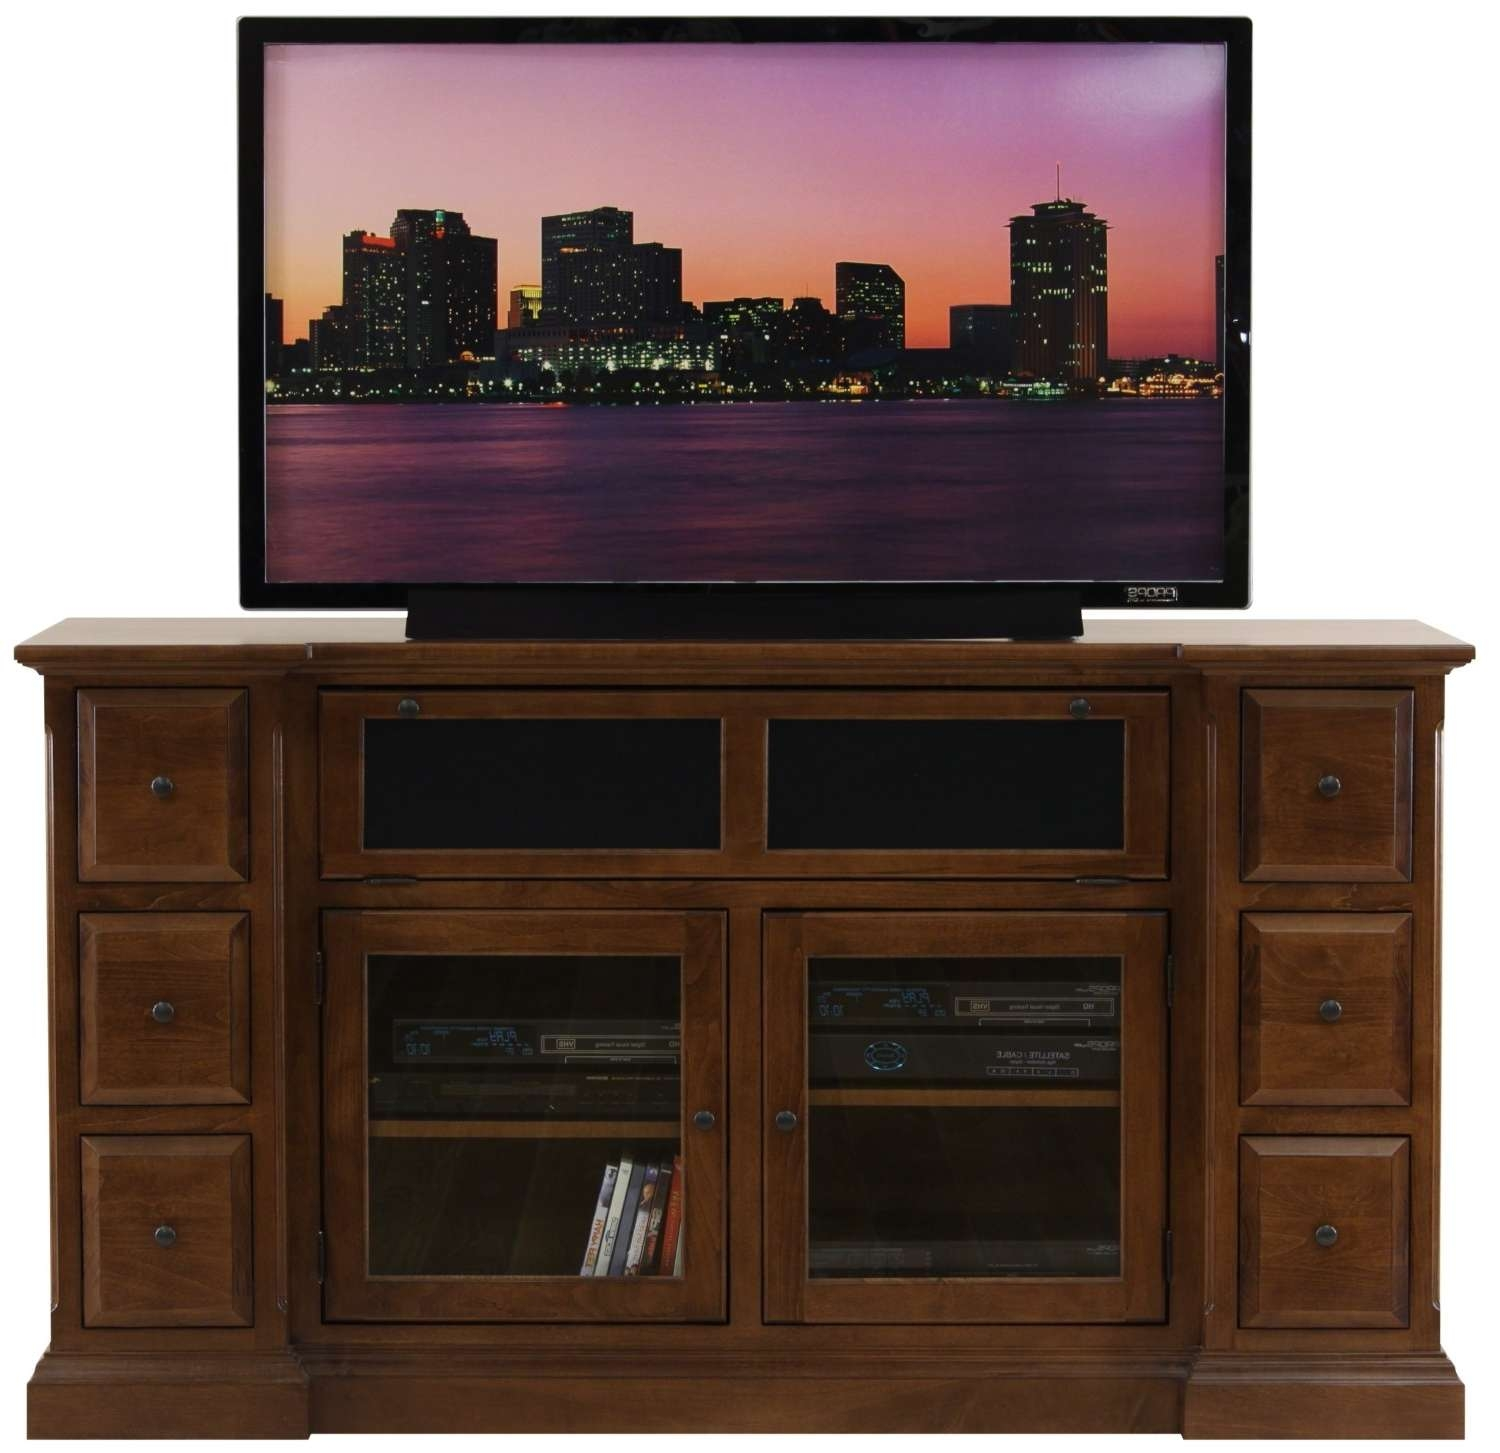 Brown Wooden Tv Stand With Storage With Glass Doors Combined With Regarding Wooden Tv Cabinets (View 2 of 20)